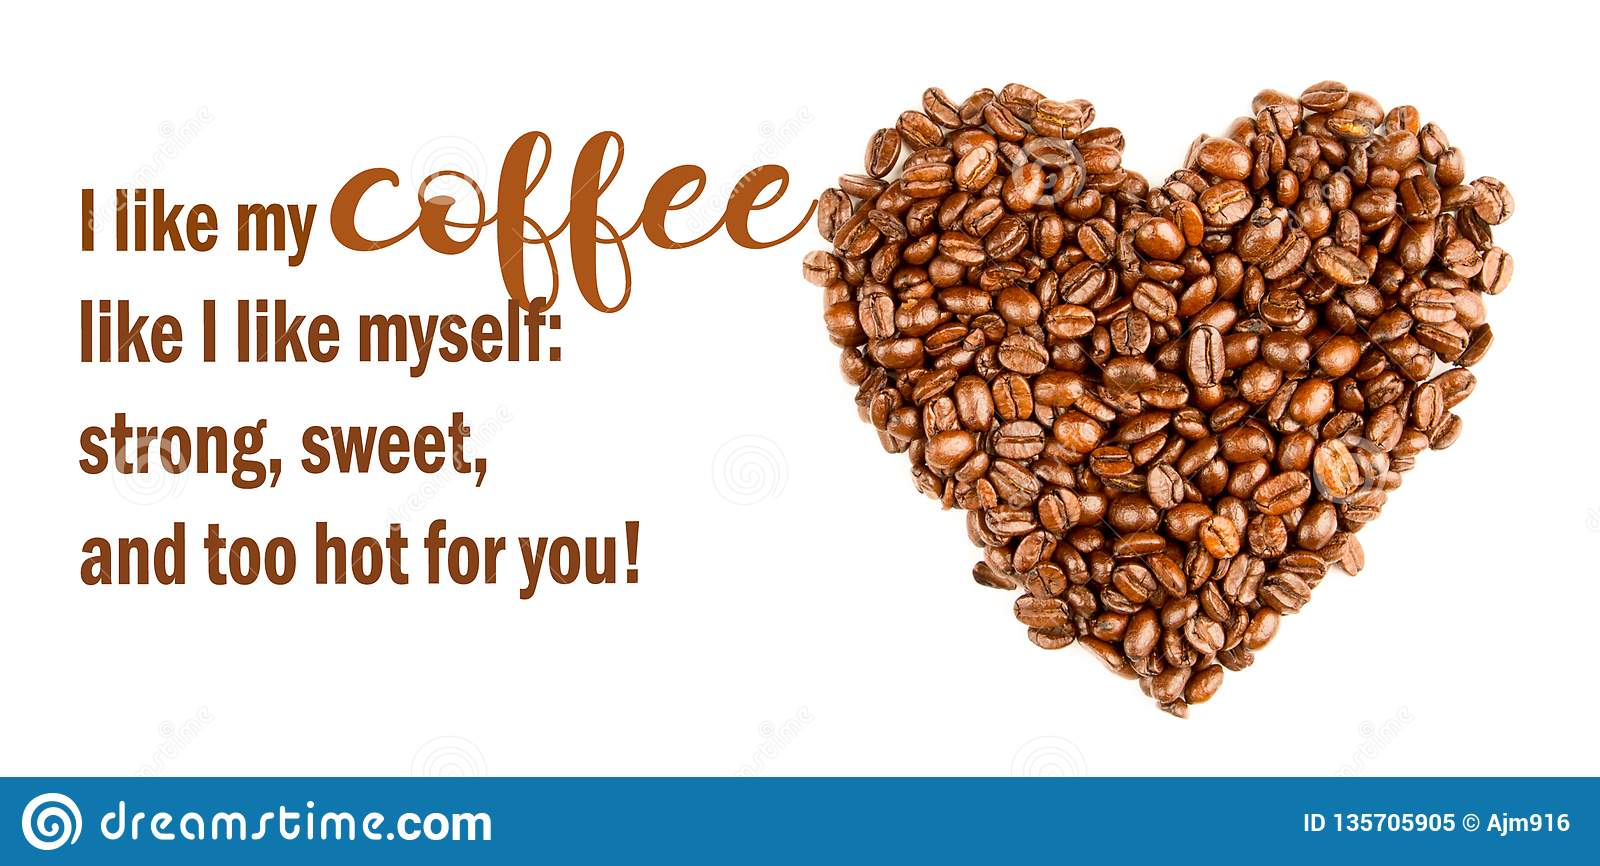 Funny Coffee Memes Sassy,Coffee Sweet As Love. Cool Quotes Stock ... #tooMuchCoffee